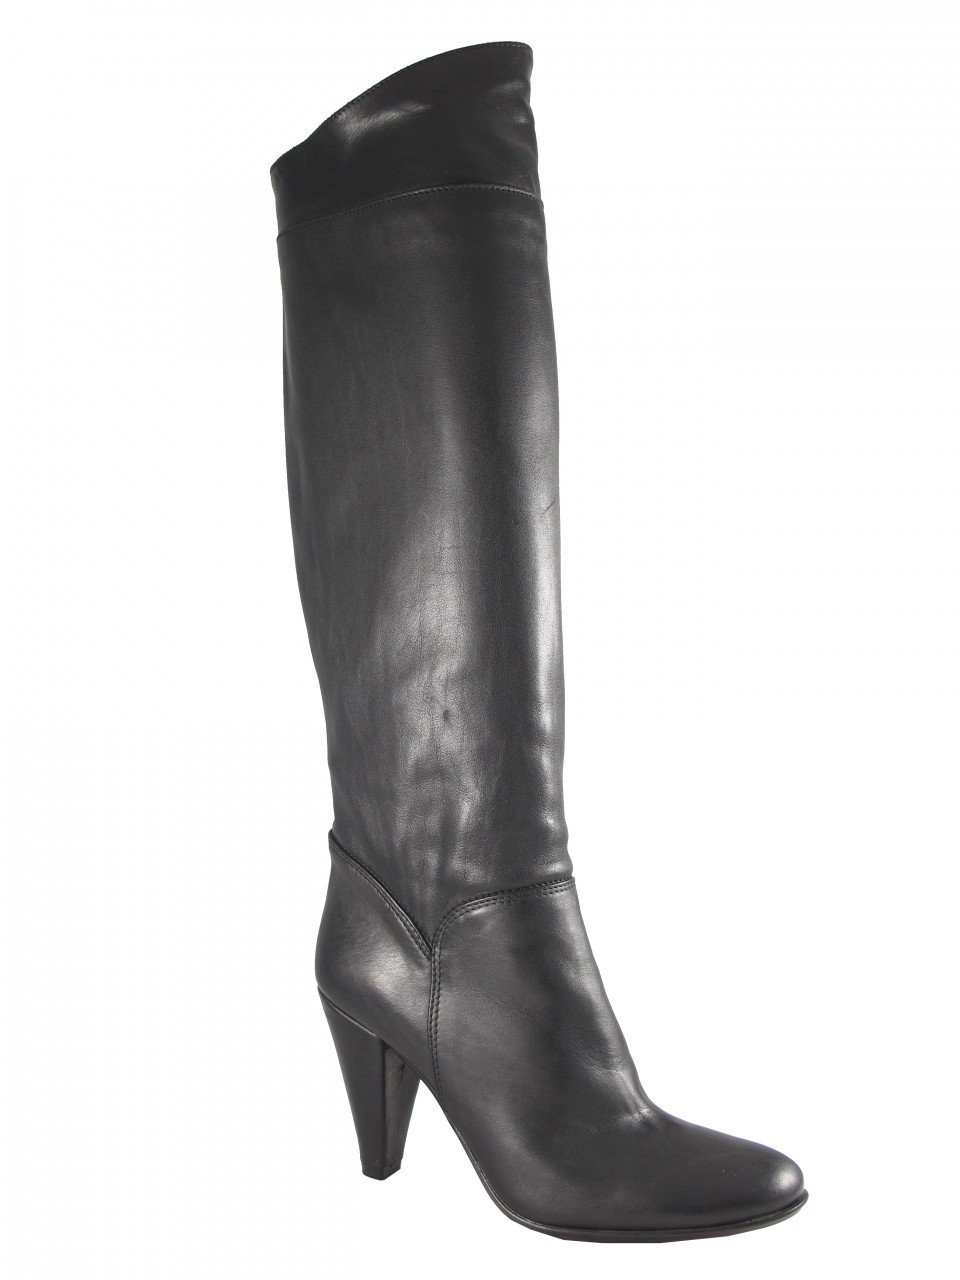 bad3cdbb647 Women's Davinci Low Heel Knee High Italian Leather Boots By Piampiani 498